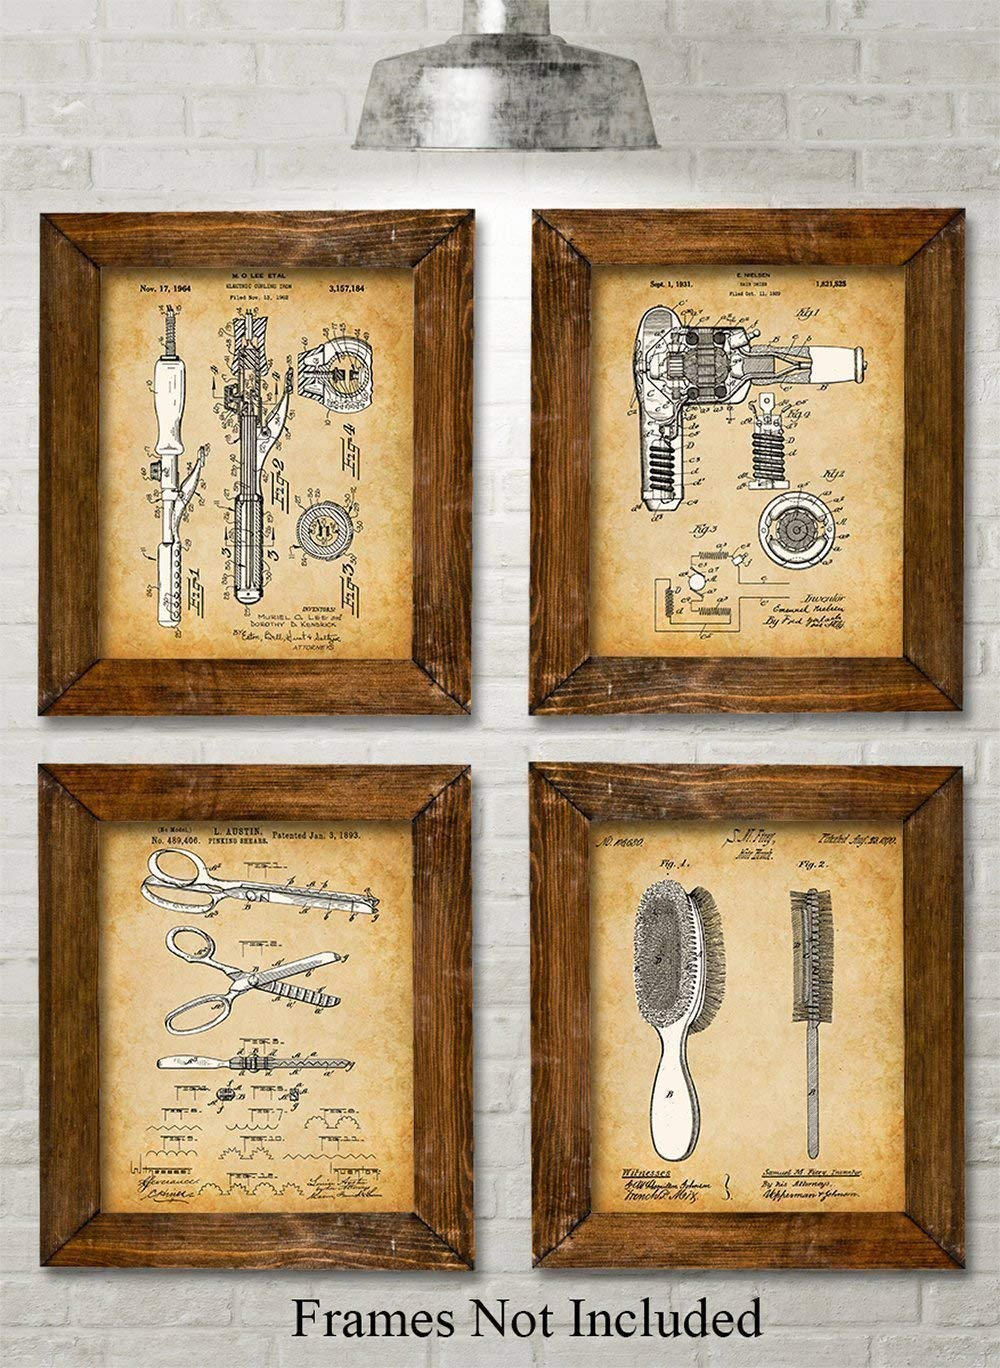 Original Hair Styling Tools Patent Art Prints - Set of Four Photos (8x10) Unframed - Makes a Great Gift Under $20 for Hairstylists, Beauticians or Bathroom Decor